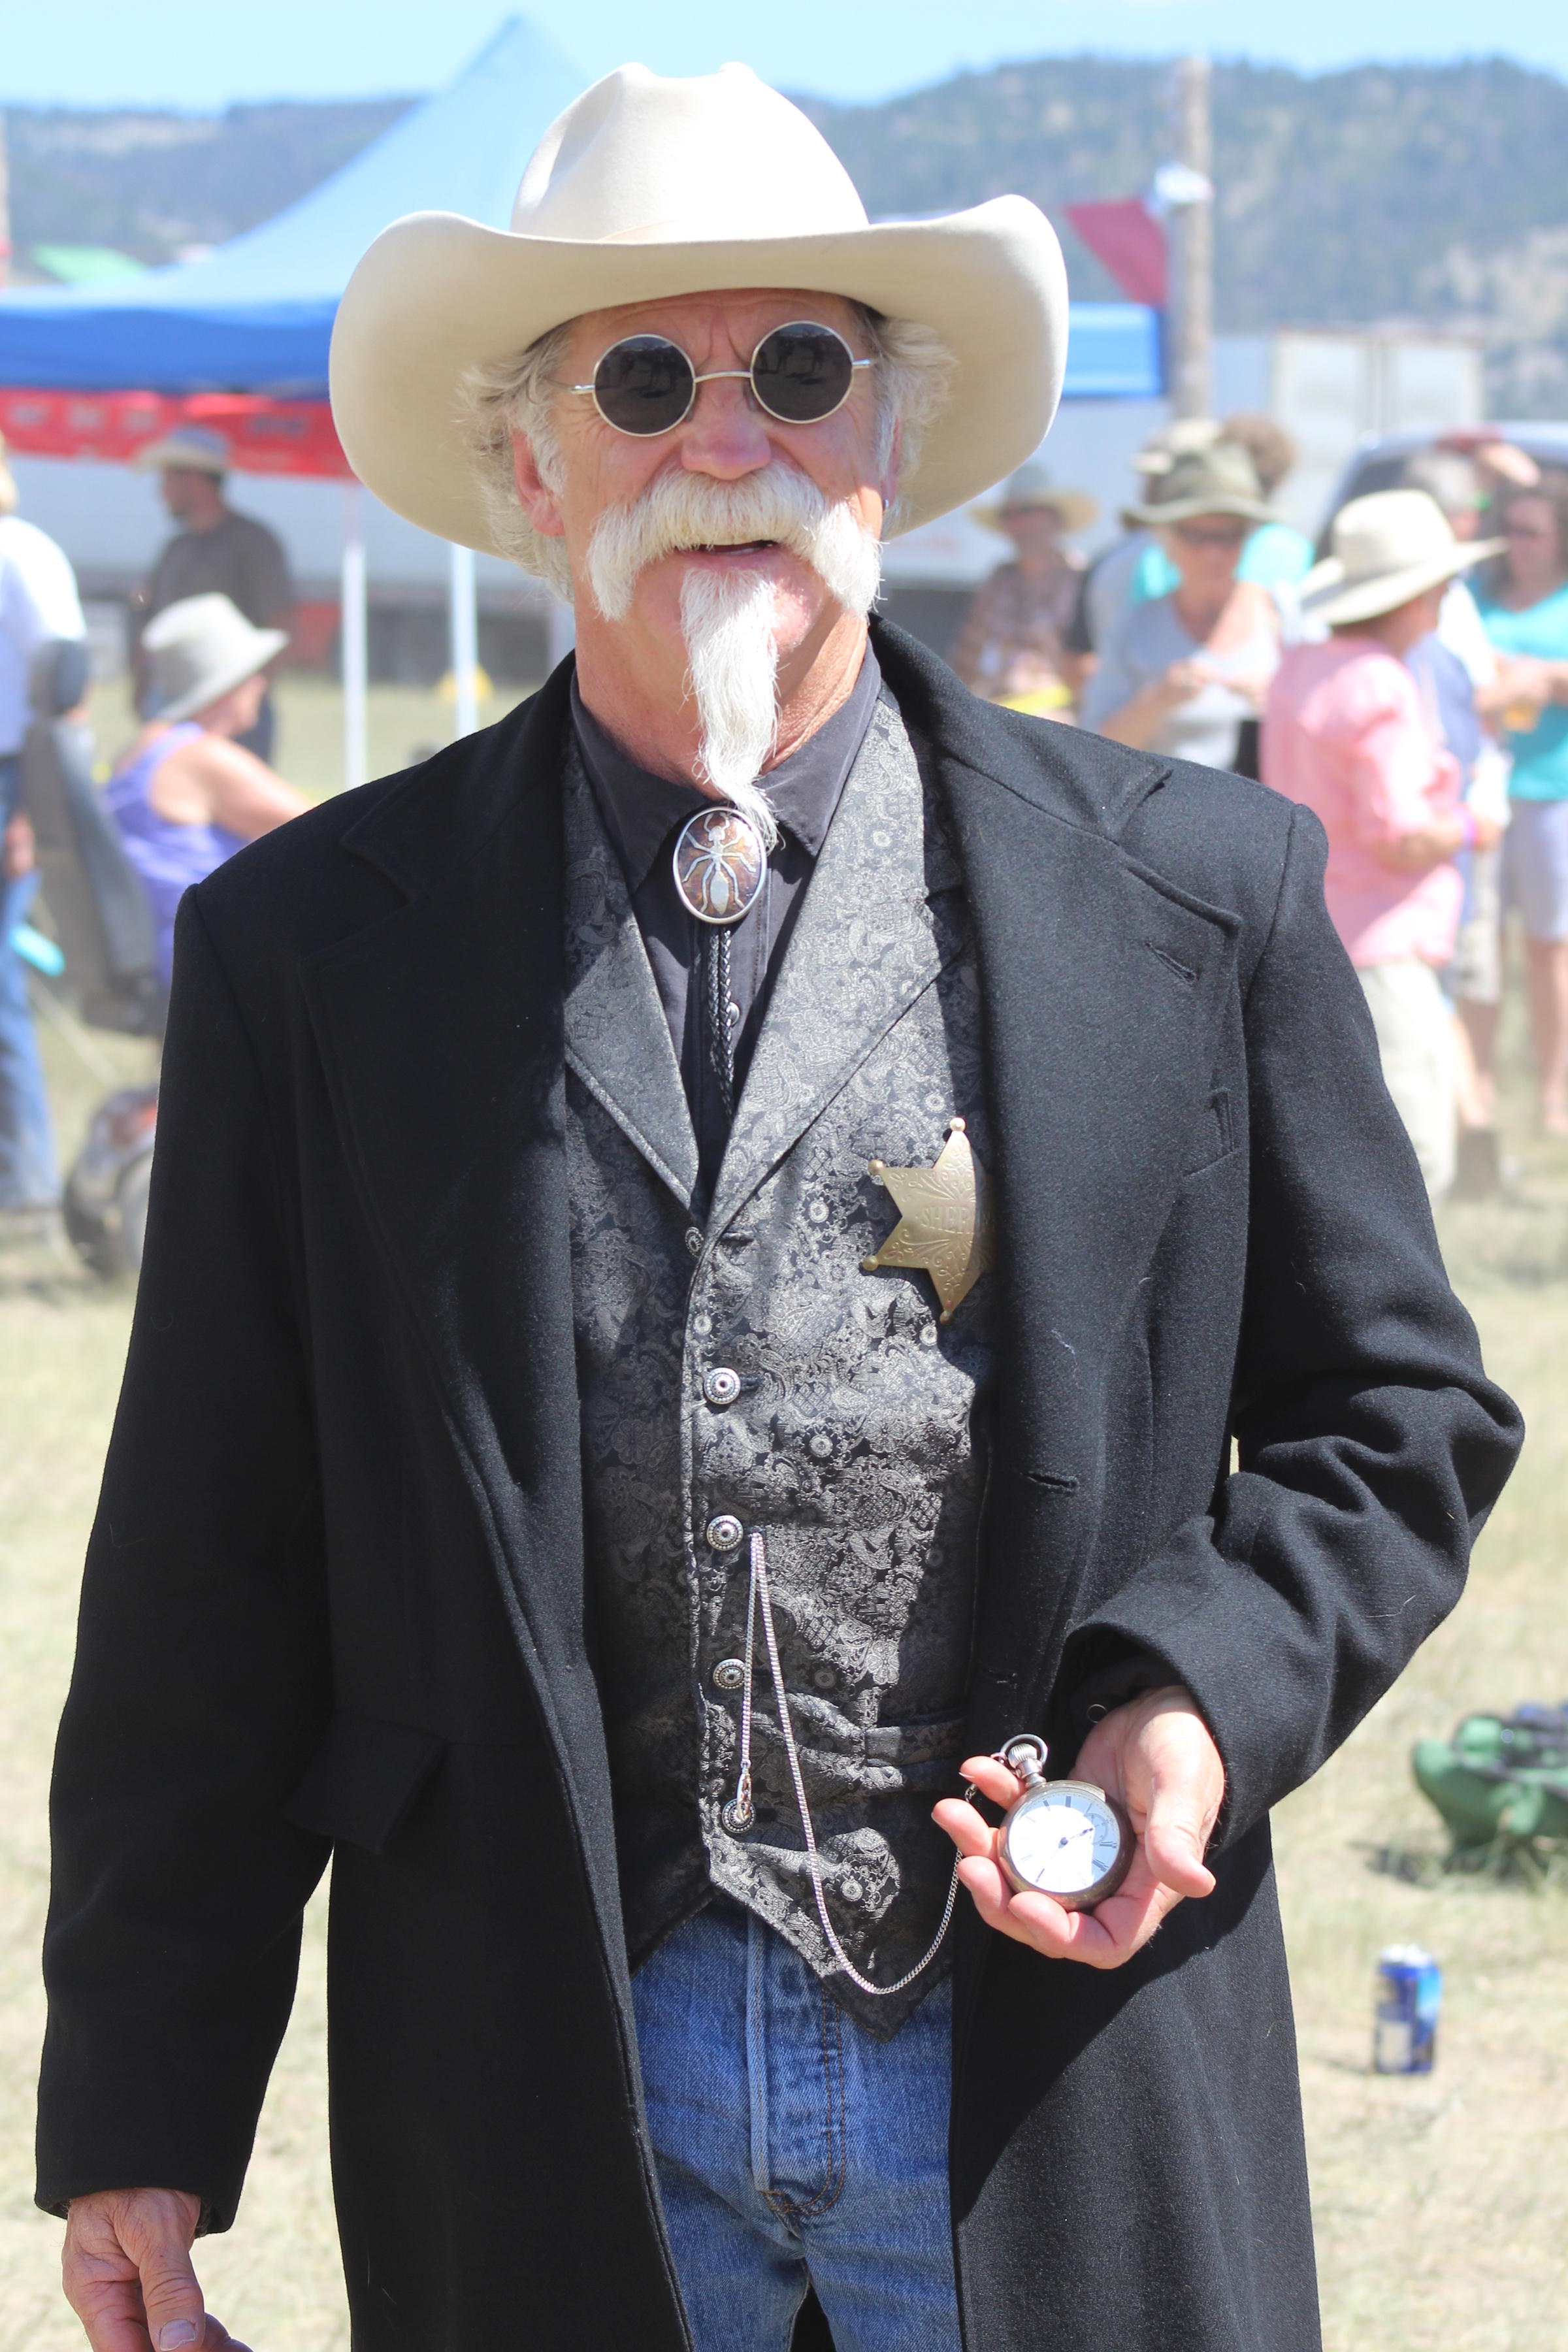 A Sultry, Contagious, Montana Style Celebration | MTPR